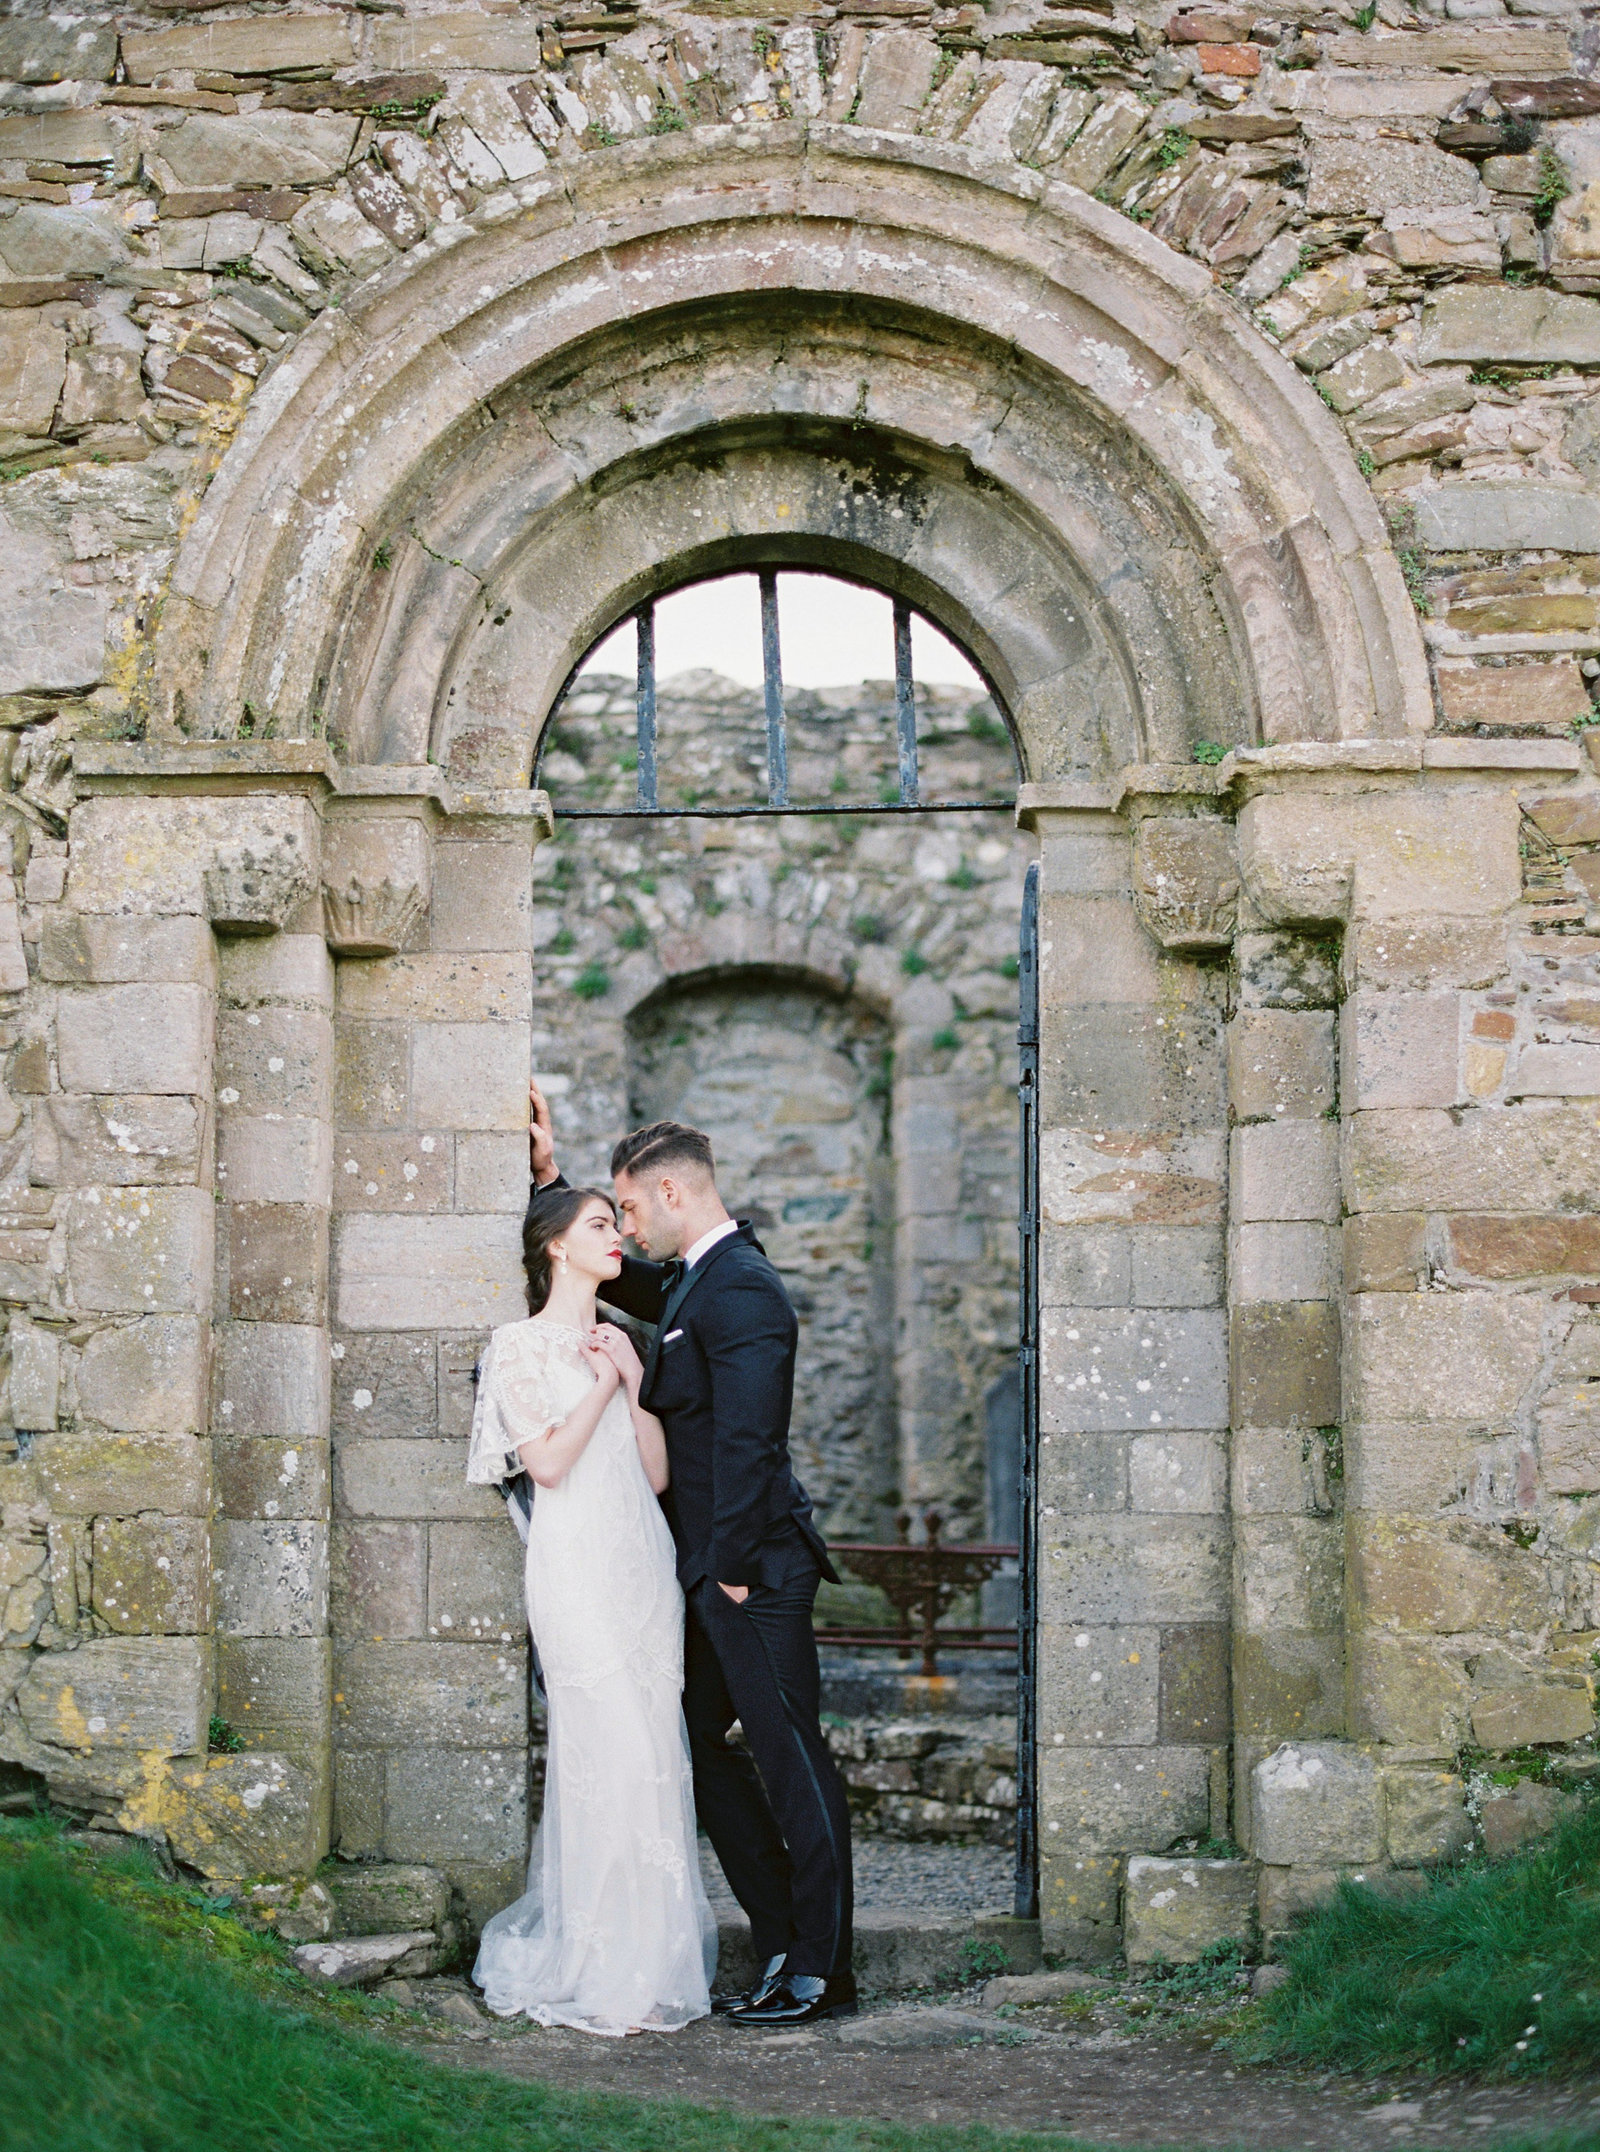 amelia_johnson_photography_for_atrendy_wedding_ireland00397